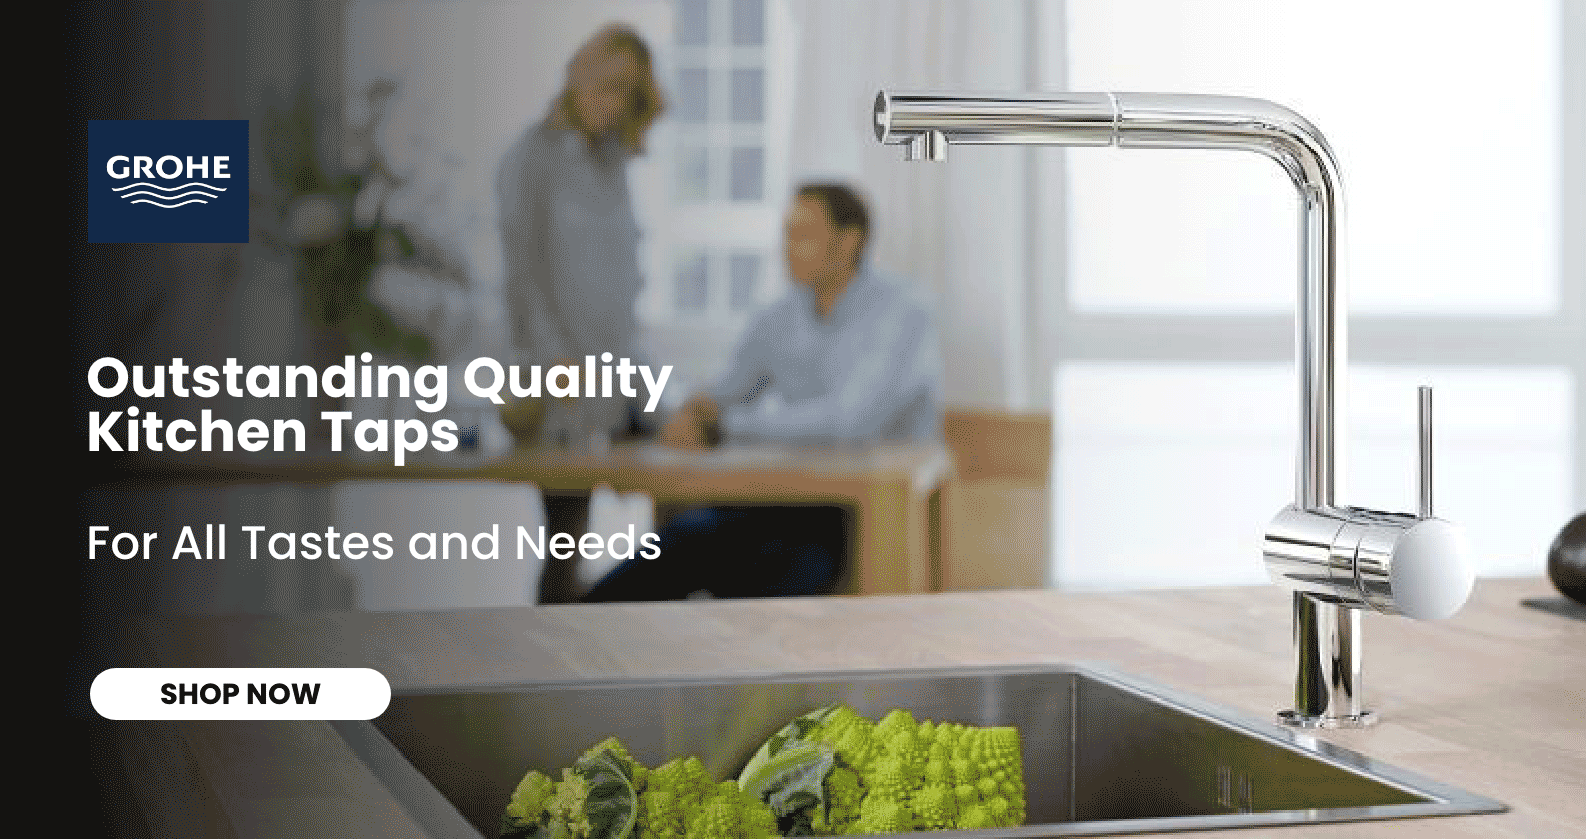 Discover GROHE Kitchen Taps at xTWOstore